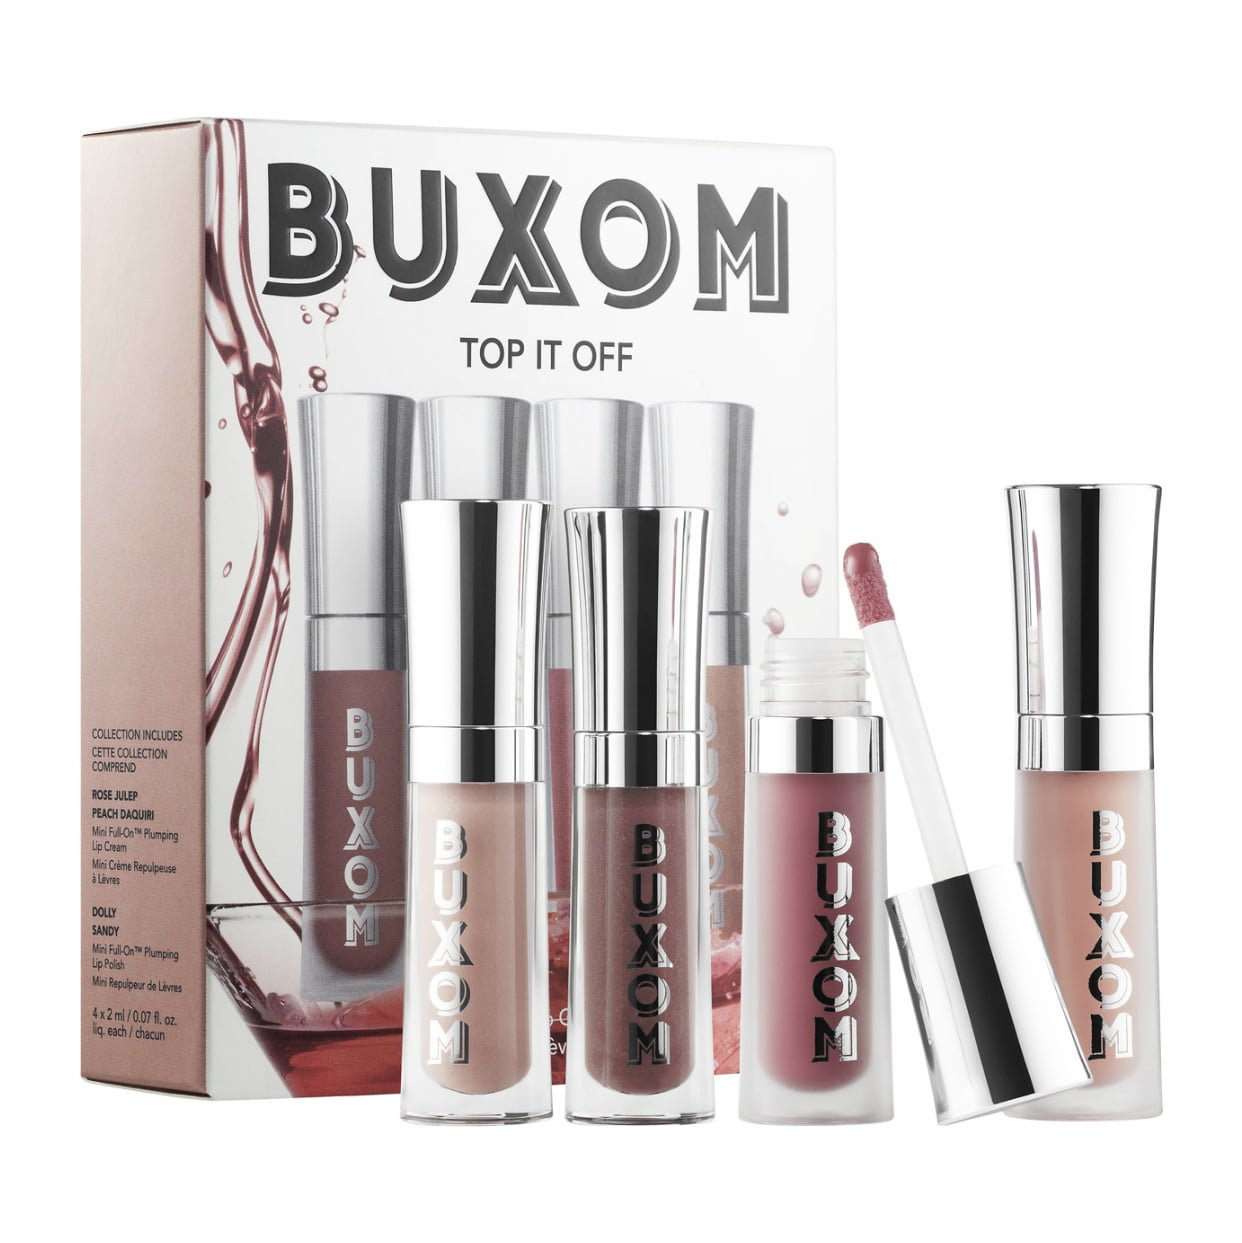 Buxom Top It Off Plumping Lip Gloss Set